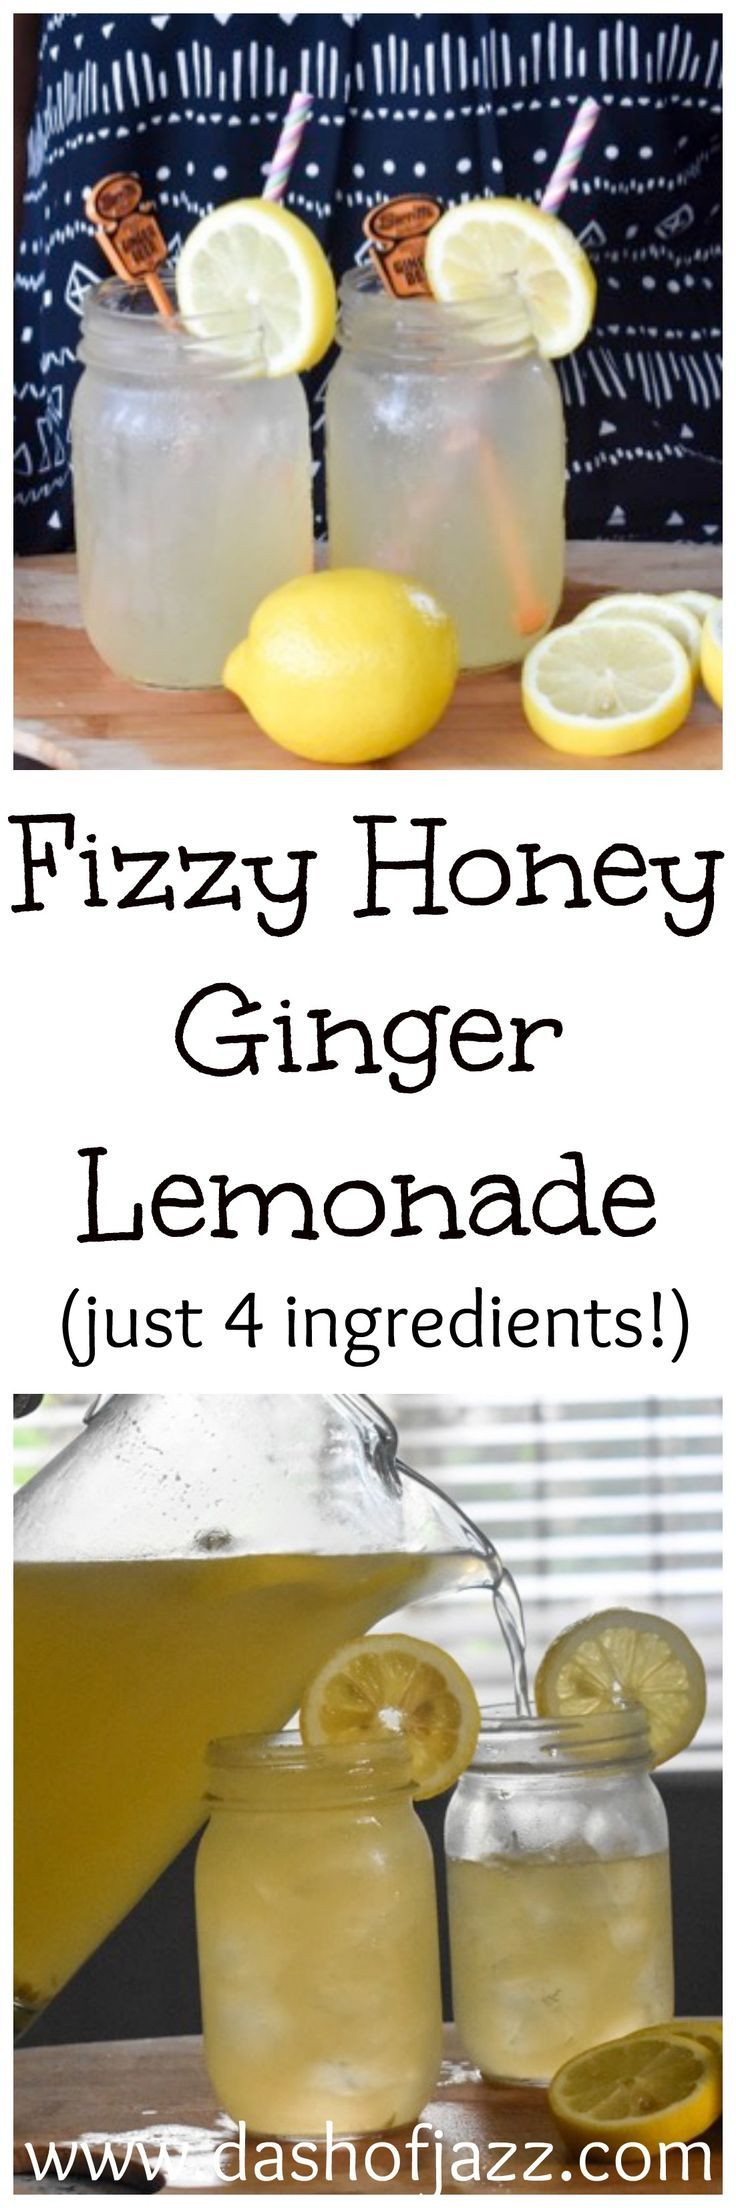 All-natural, 4-ingredient fuzzy honey ginger lemonade is your new favorite easy summer drink! Dash of Jazz